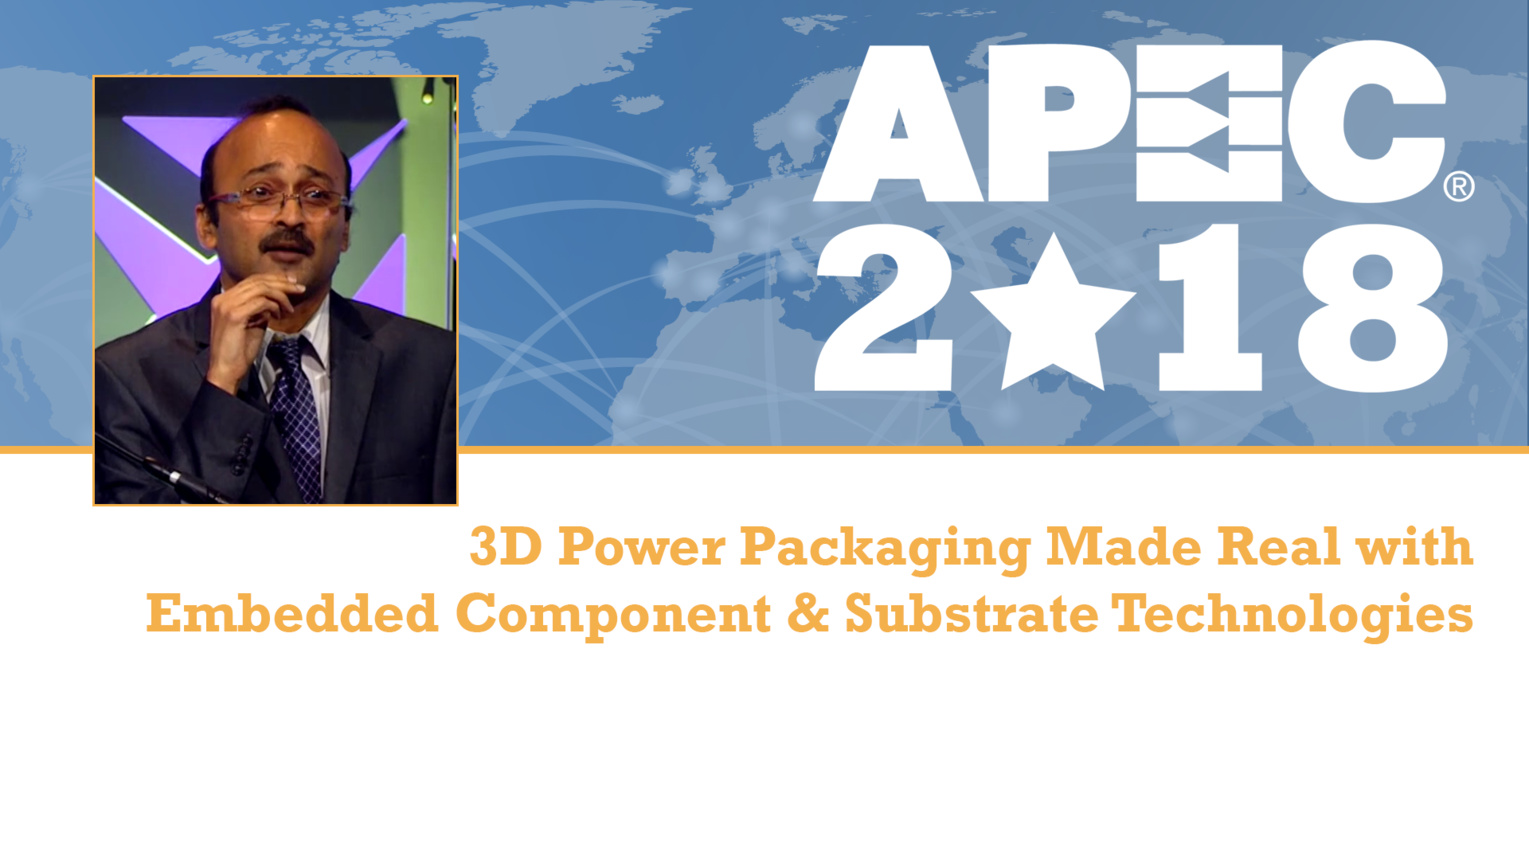 3D Power Packaging Made Real with Embedded Component and Substrate Technologies - P.M. Raj, APEC 2018